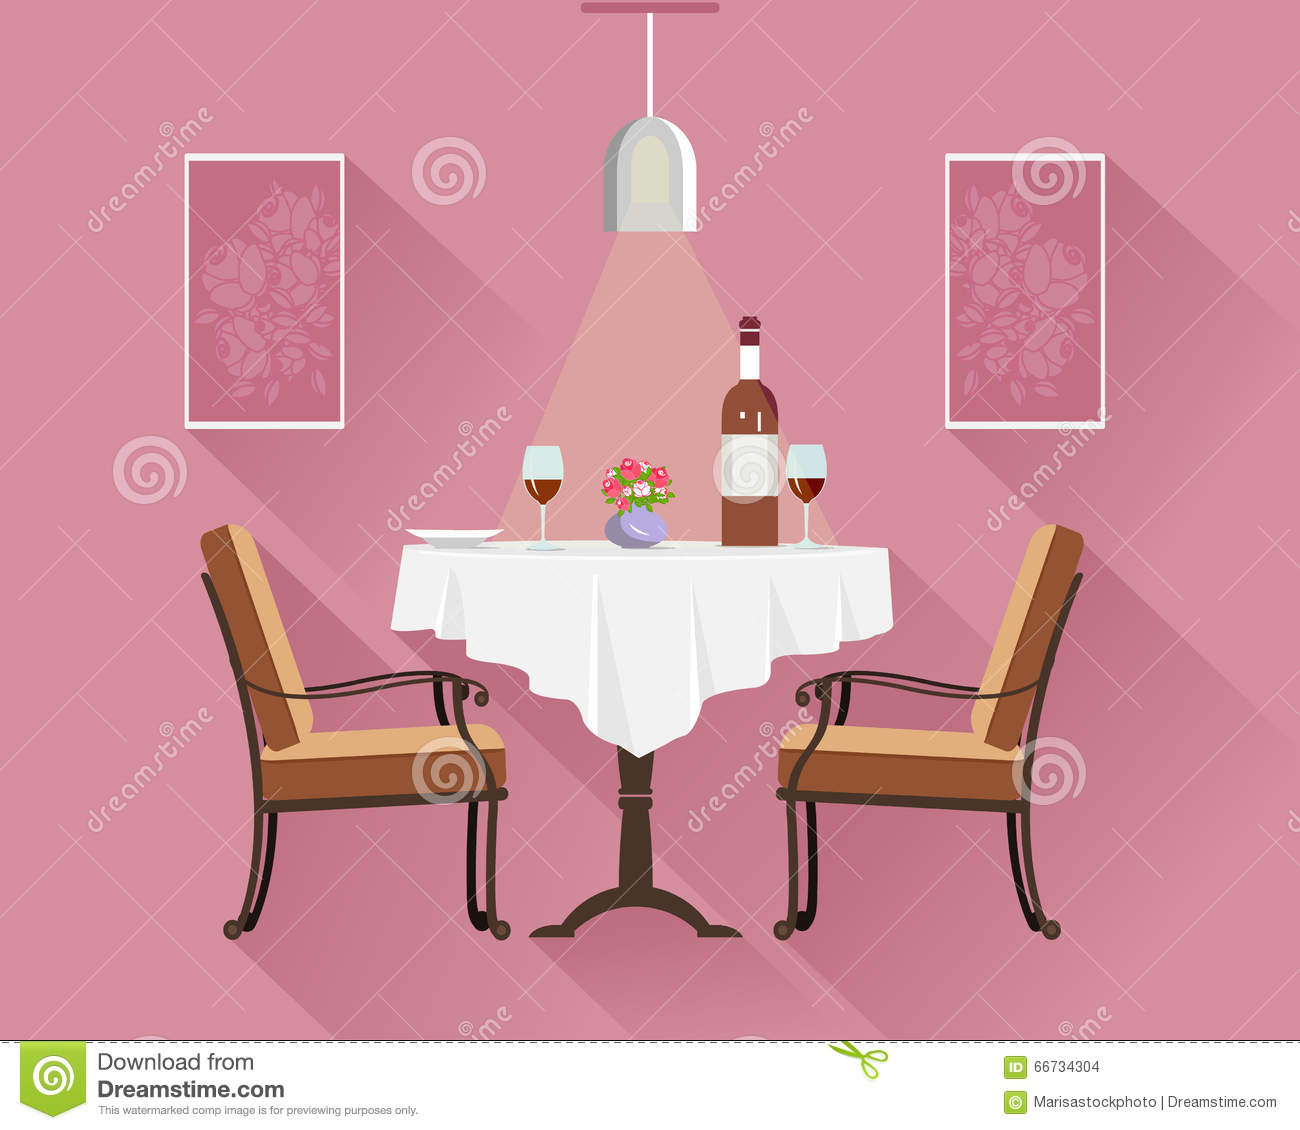 Table For 2 : Flat style round restaurant table for two with white cloth